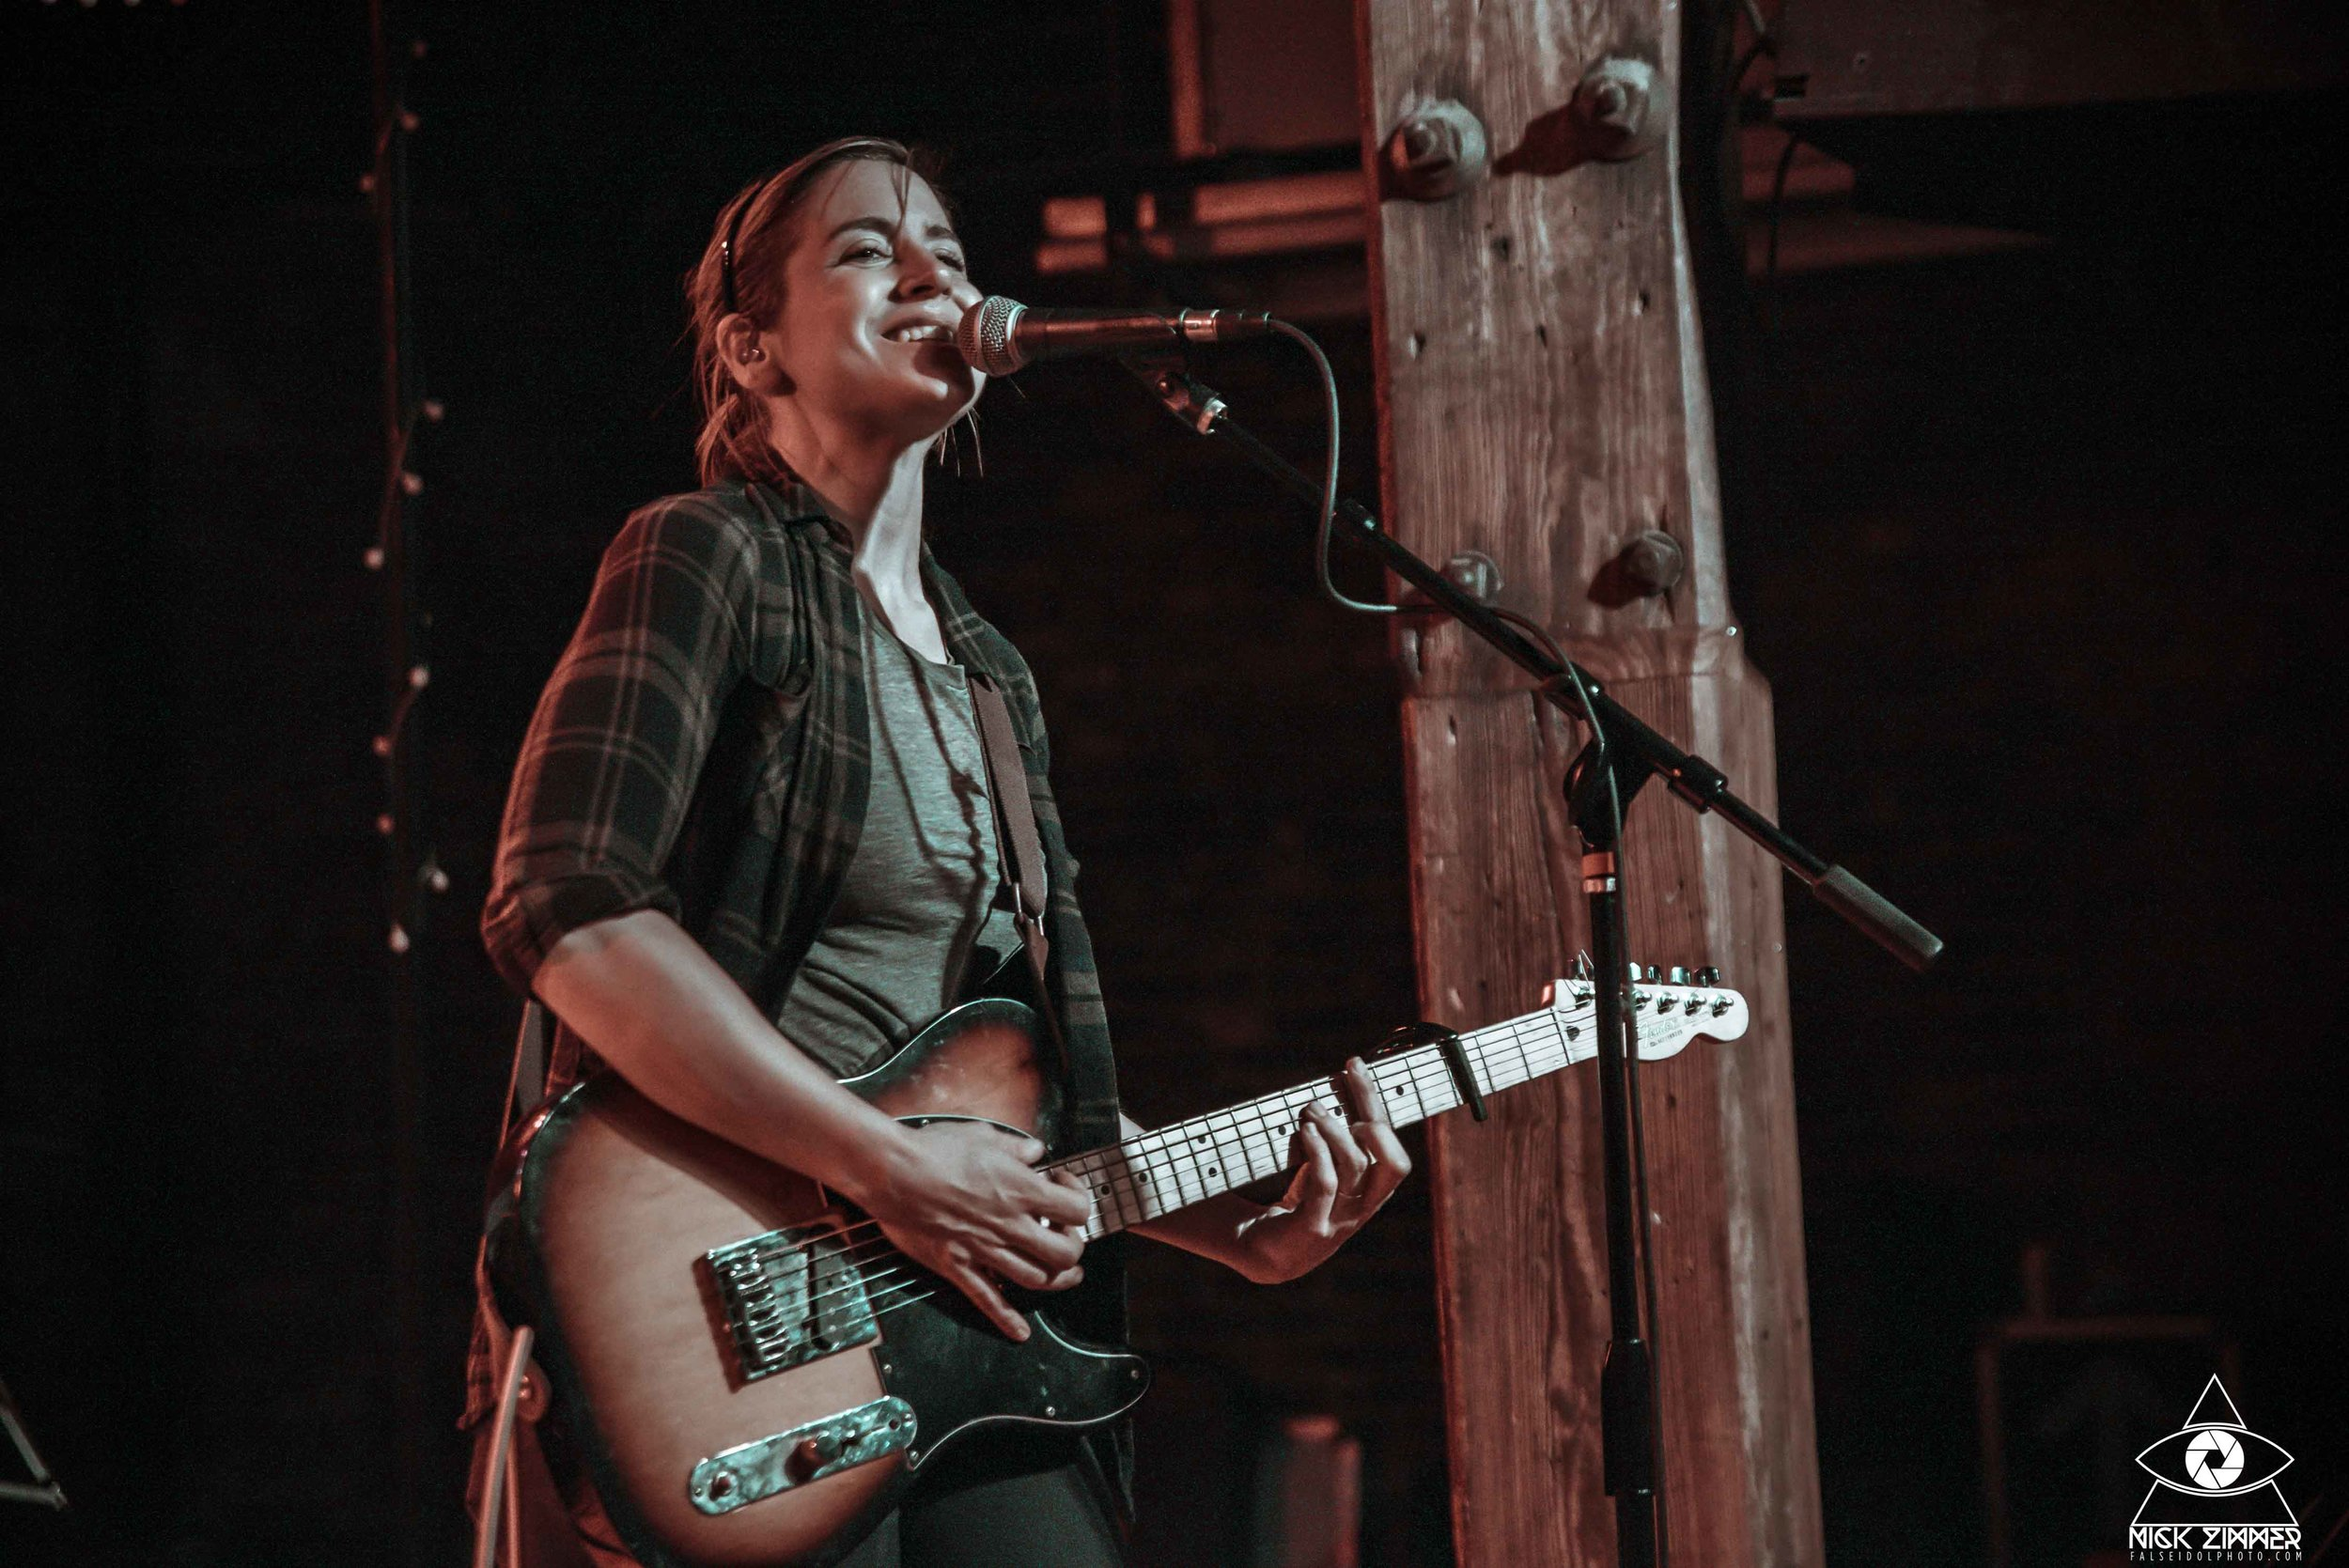 1laurastevenson.mercylounge.nickzimmer (17 of 26).jpg